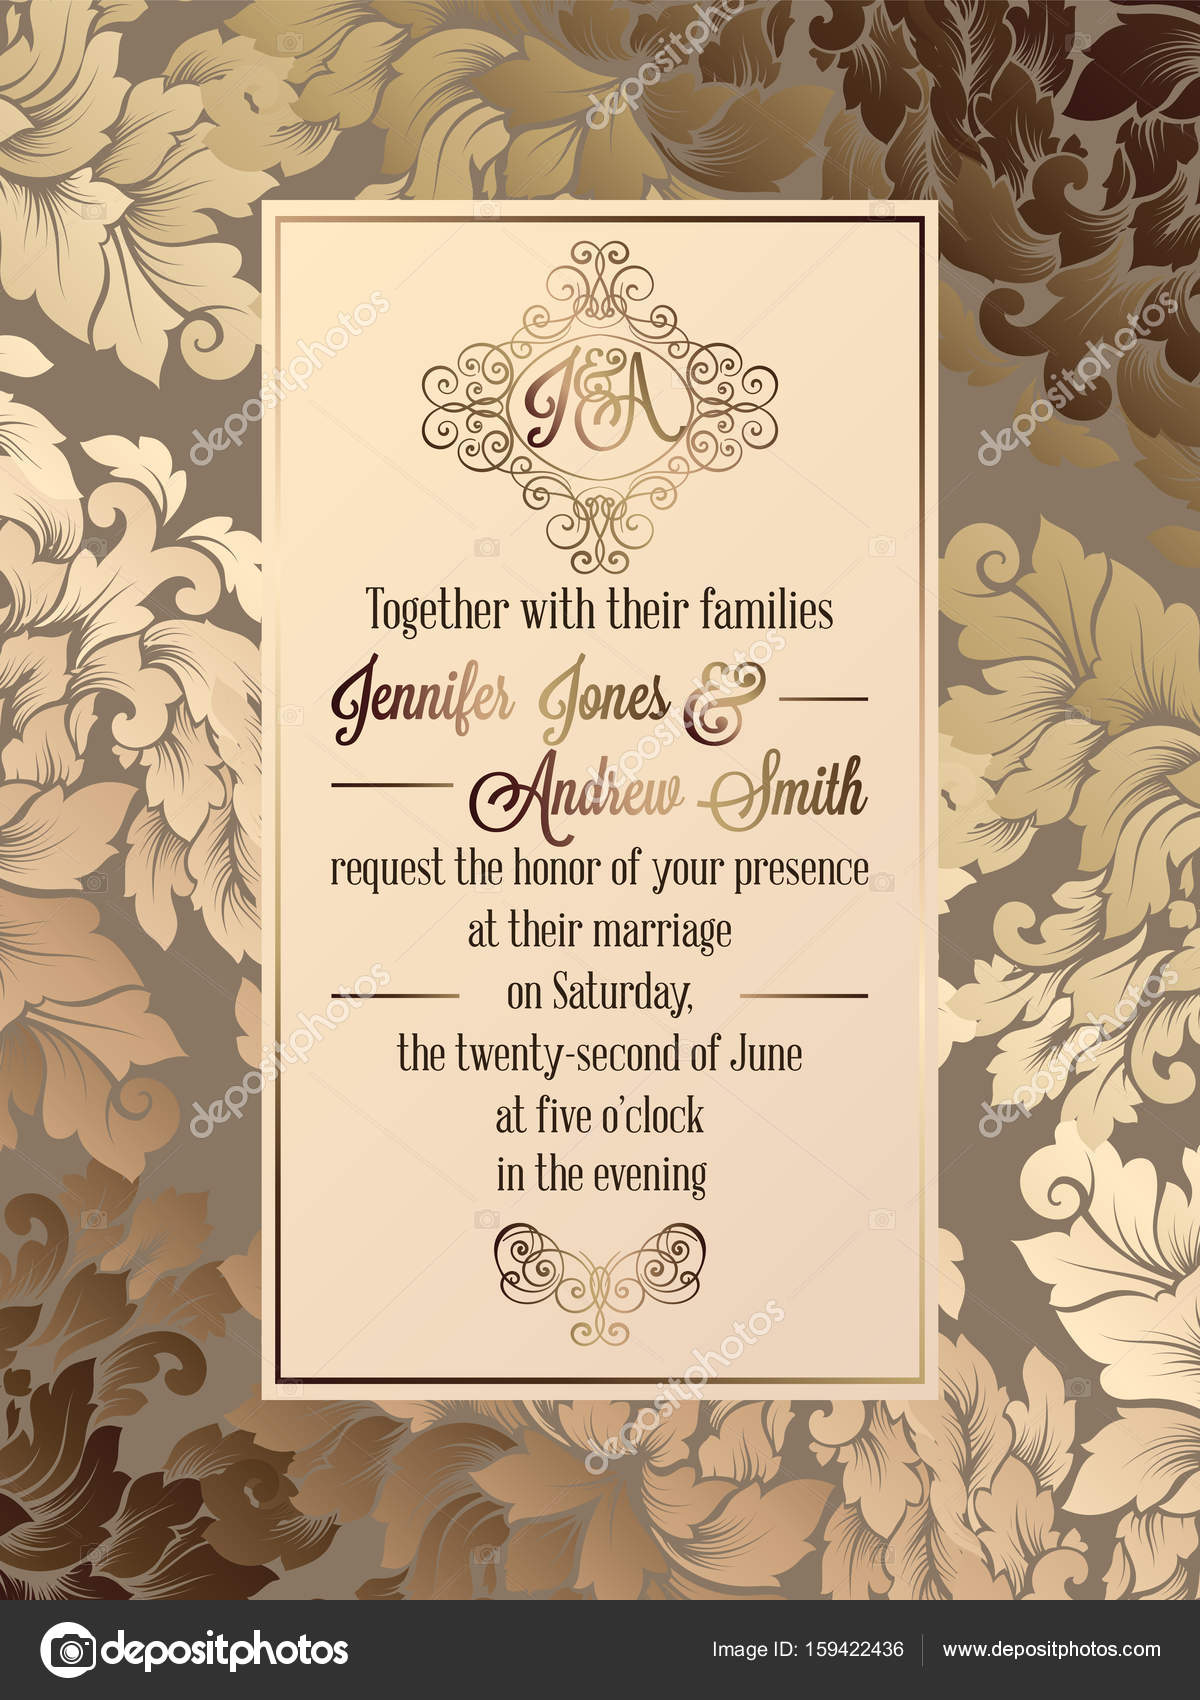 Vintage baroque style wedding invitation card template elegant vintage baroque style wedding invitation card template elegant formal design with damask background stopboris Gallery